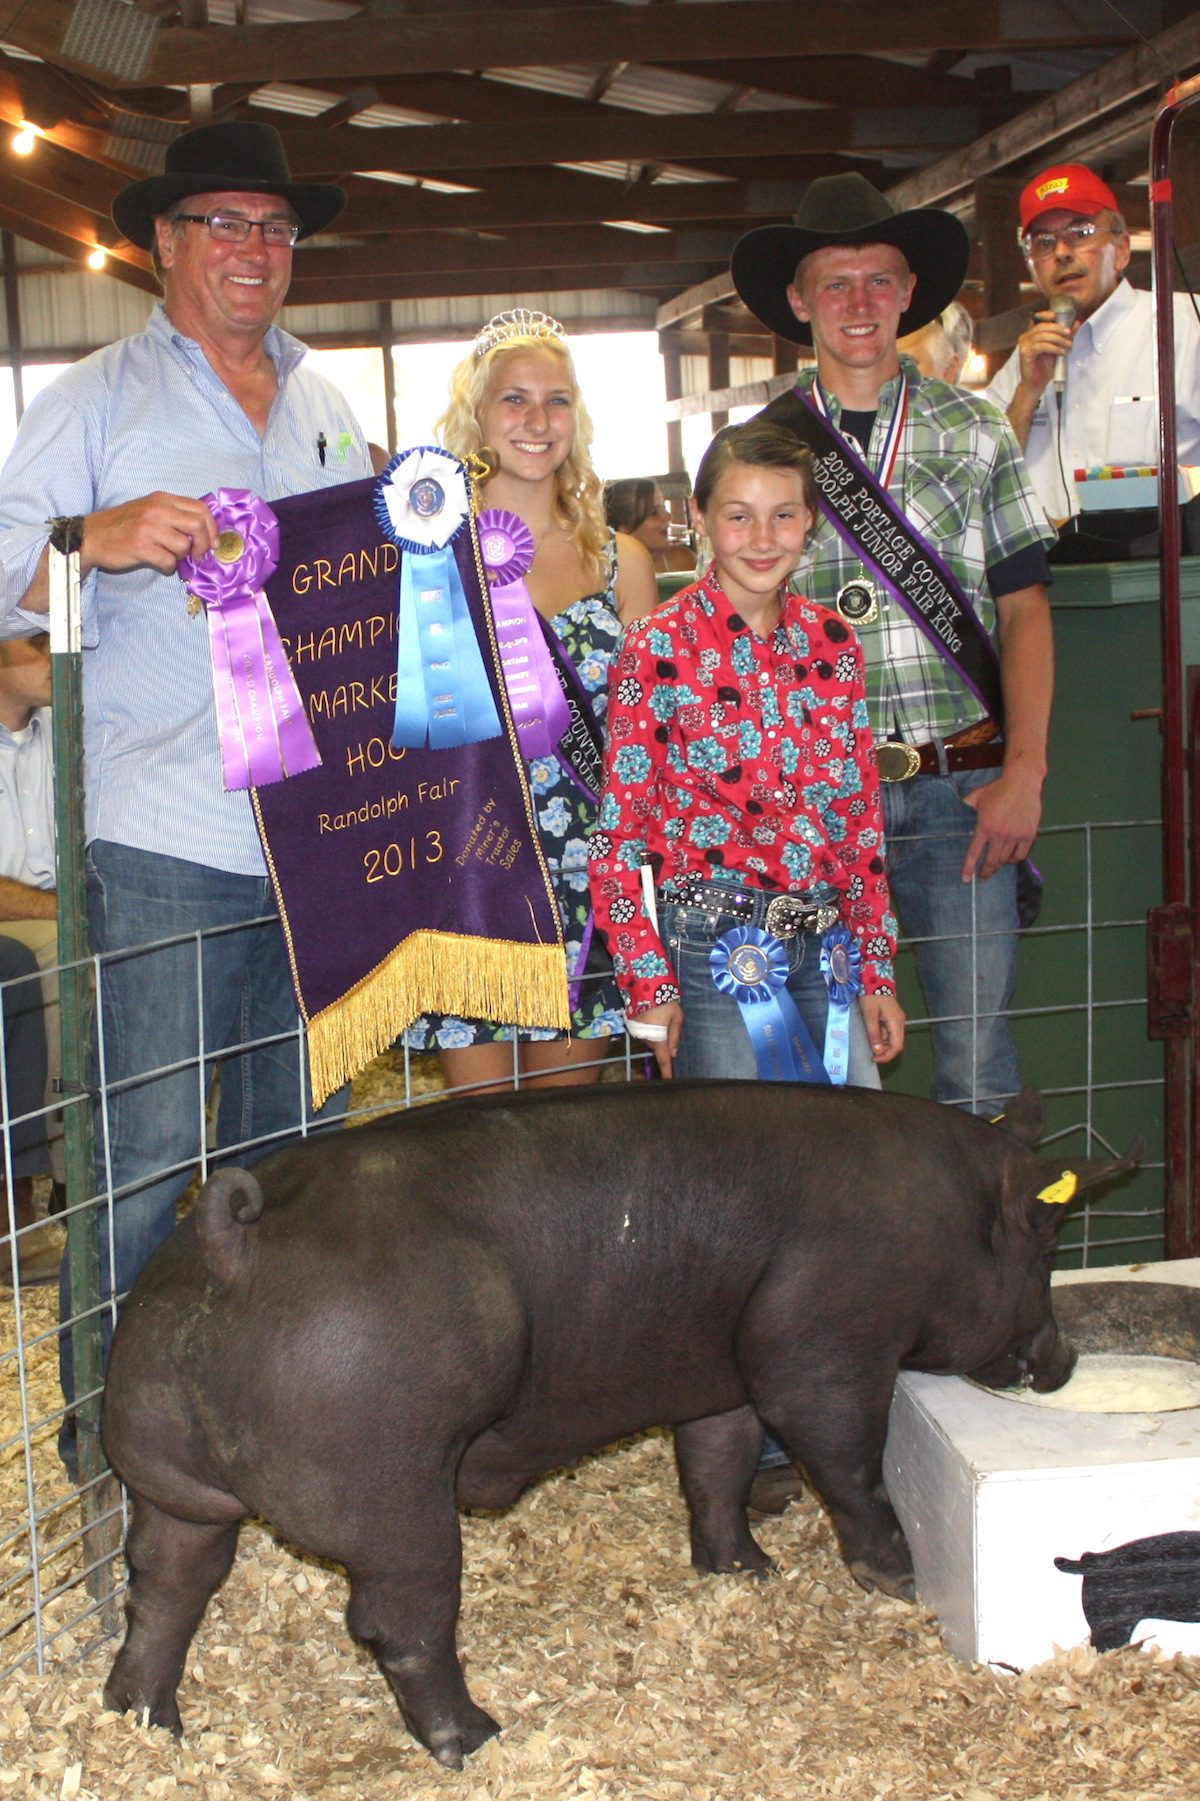 Grand Champion Hog Brings 21 Pound At 2013 Portage County